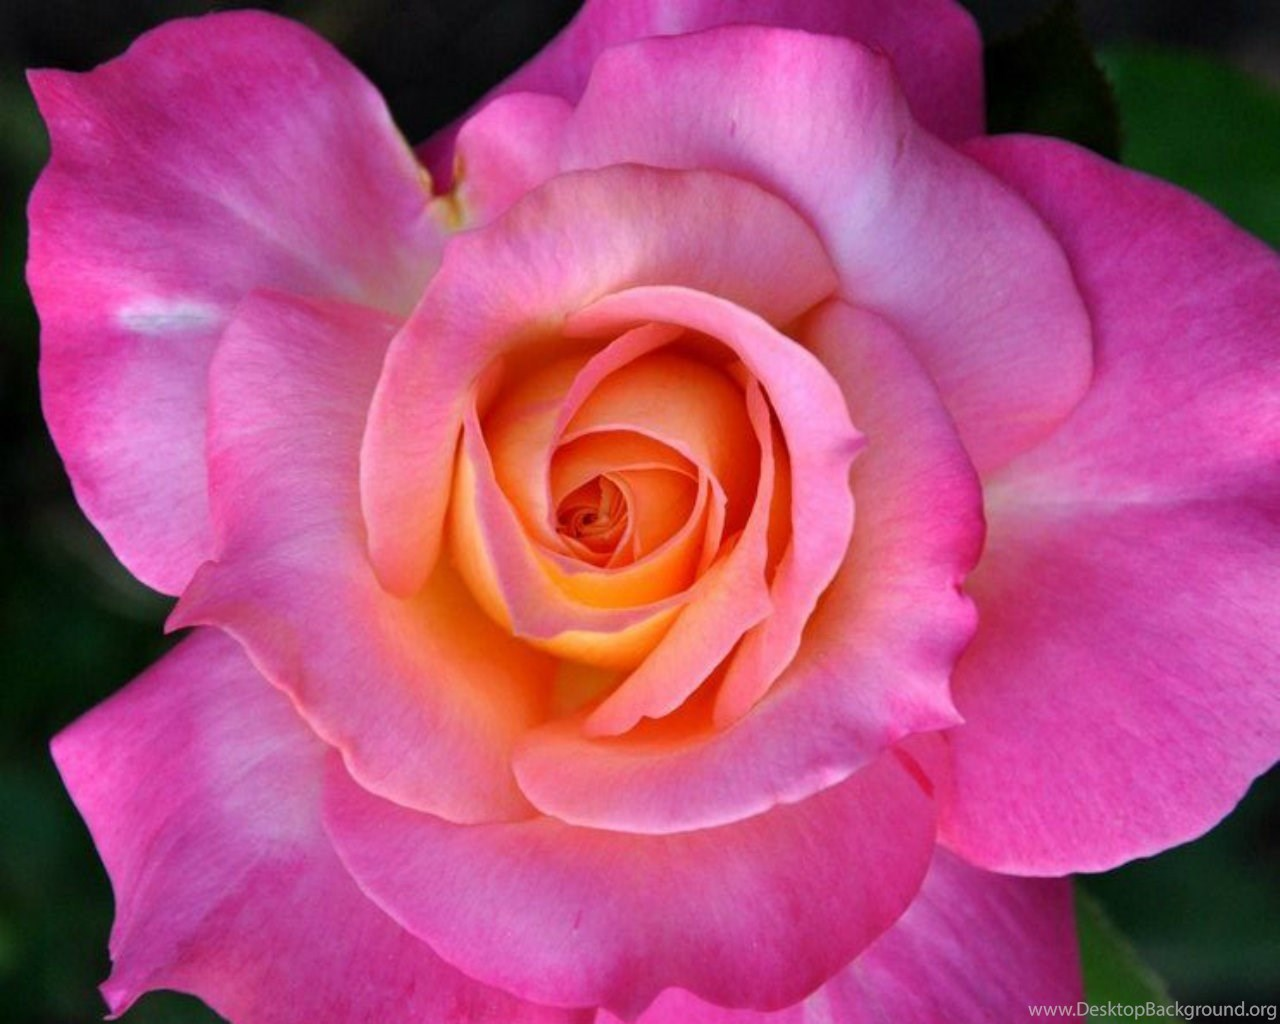 Flowers Beautiful Rose Pink Nature Flower Wallpapers Gallery For